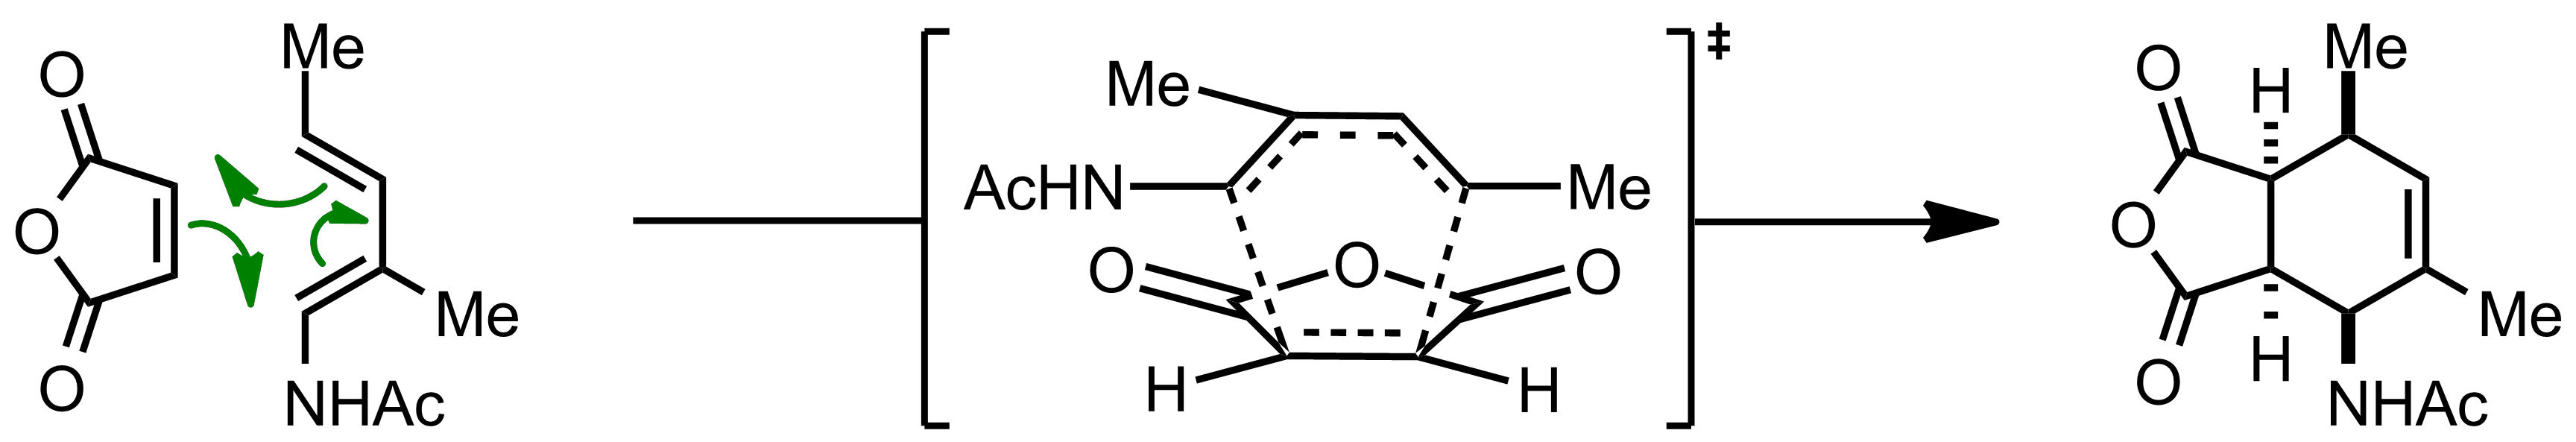 Mechanism of the Diels-Alder Reaction